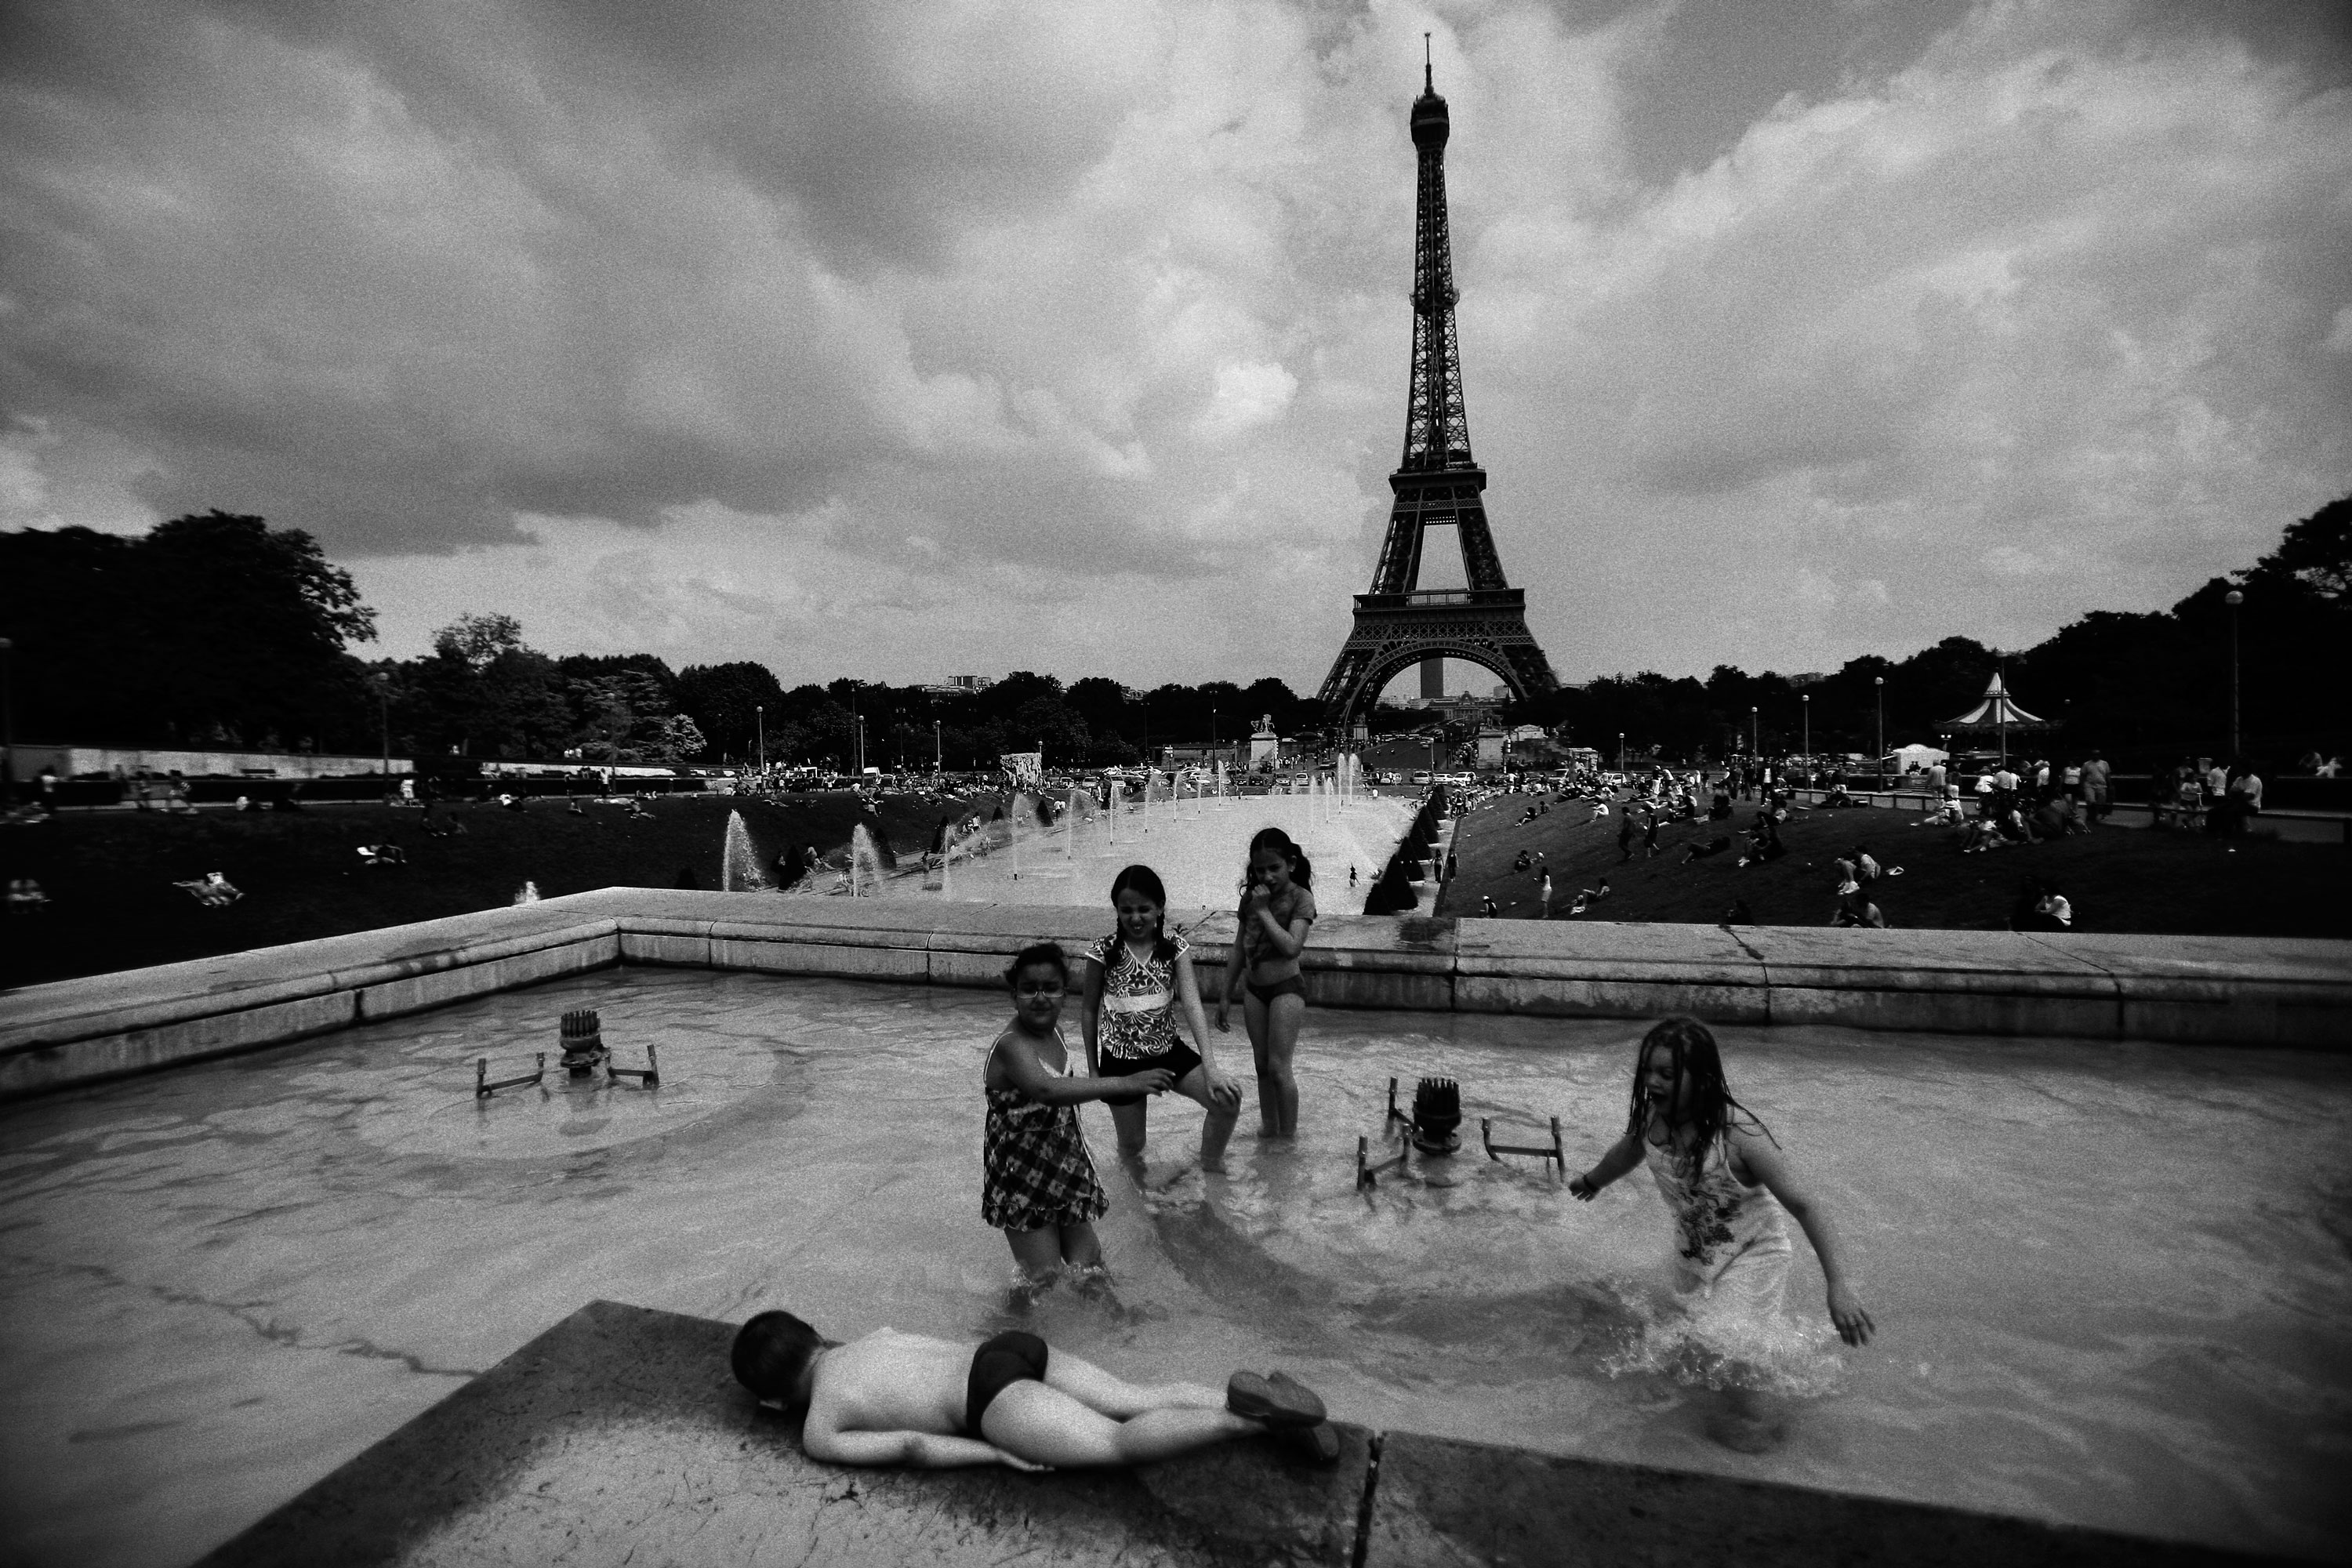 Children play in a fountain at Place du Trocadero in Paris on June 1, 2009.